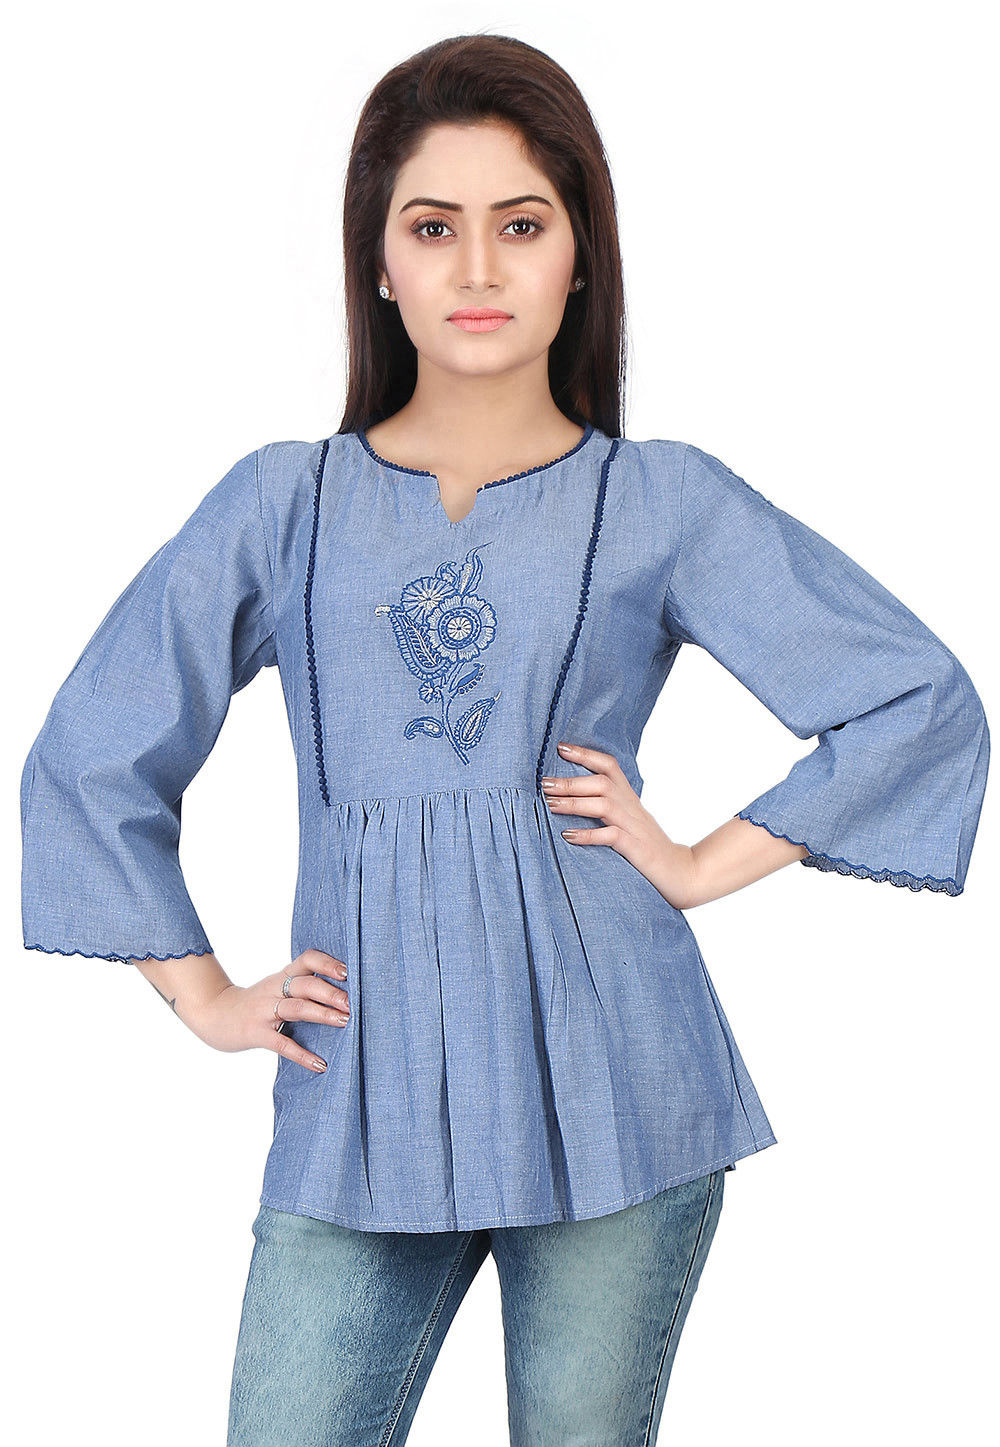 Embroidered Chambray Top in Blue